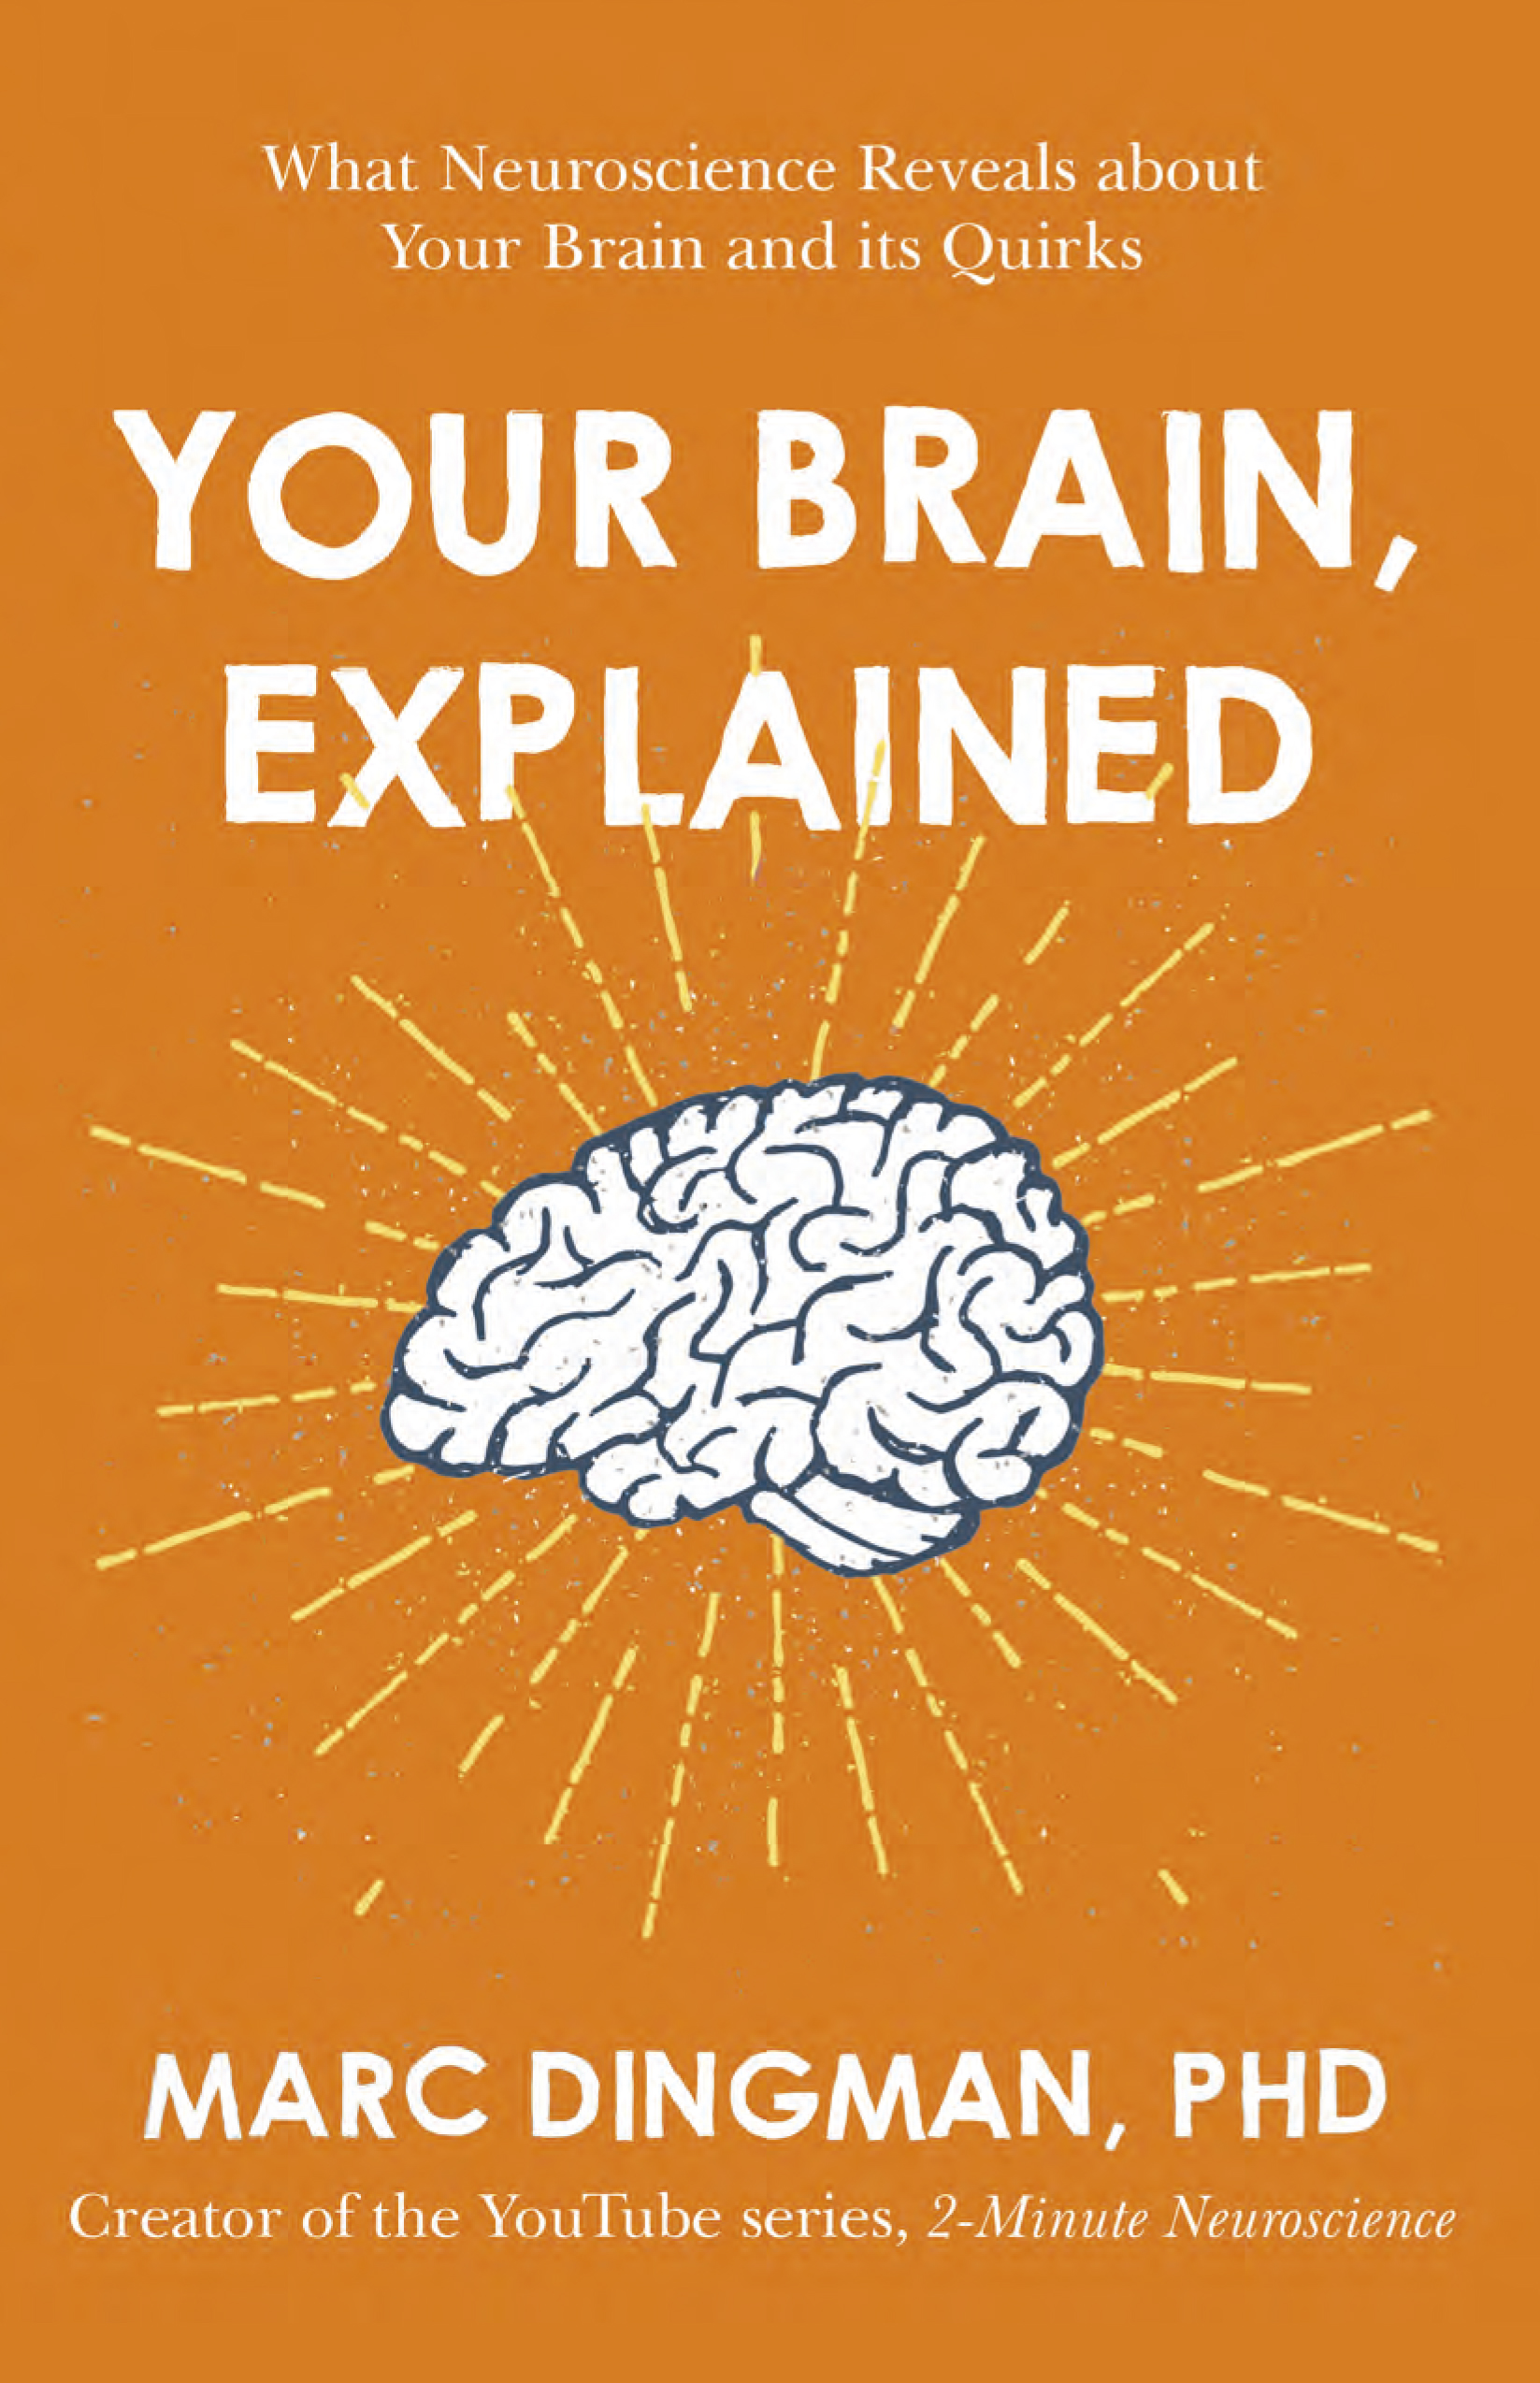 Your Brain Explained.jpg